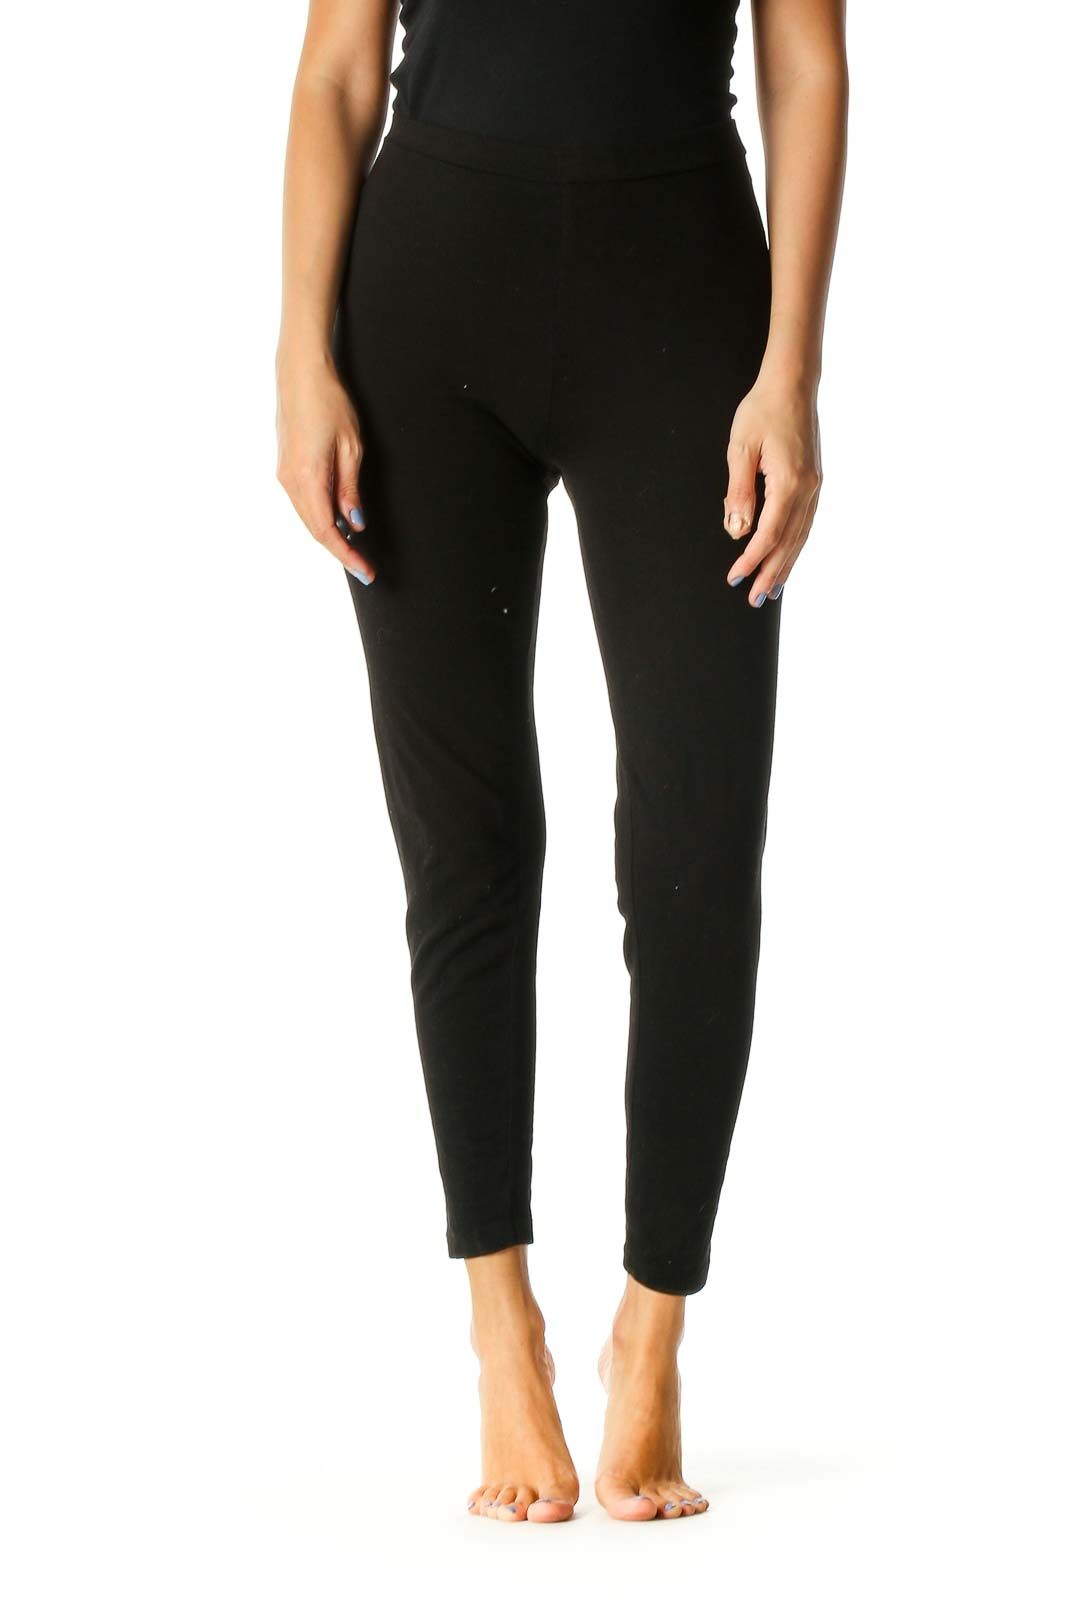 Brown Solid Casual Leggings Front